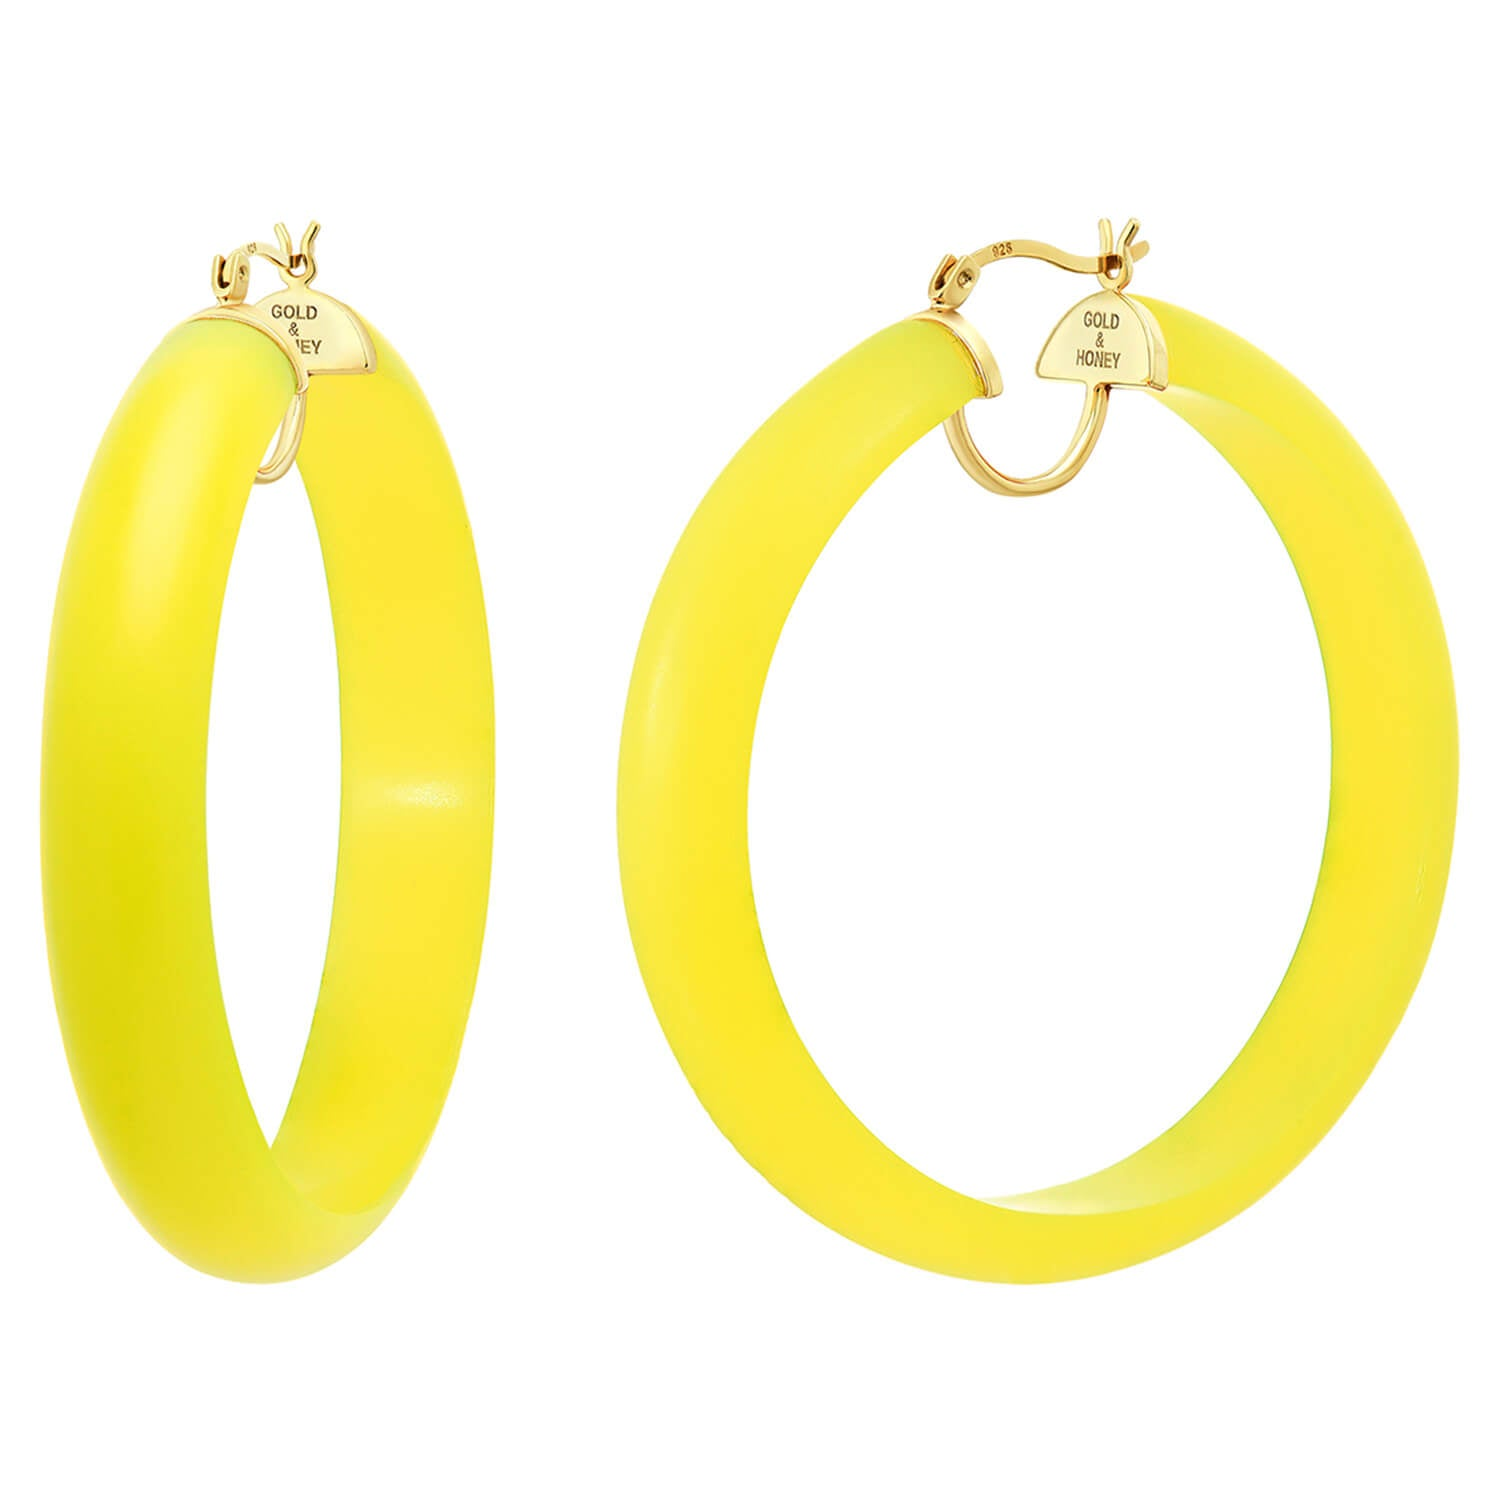 Frosted Lucite Hoops in Yellow